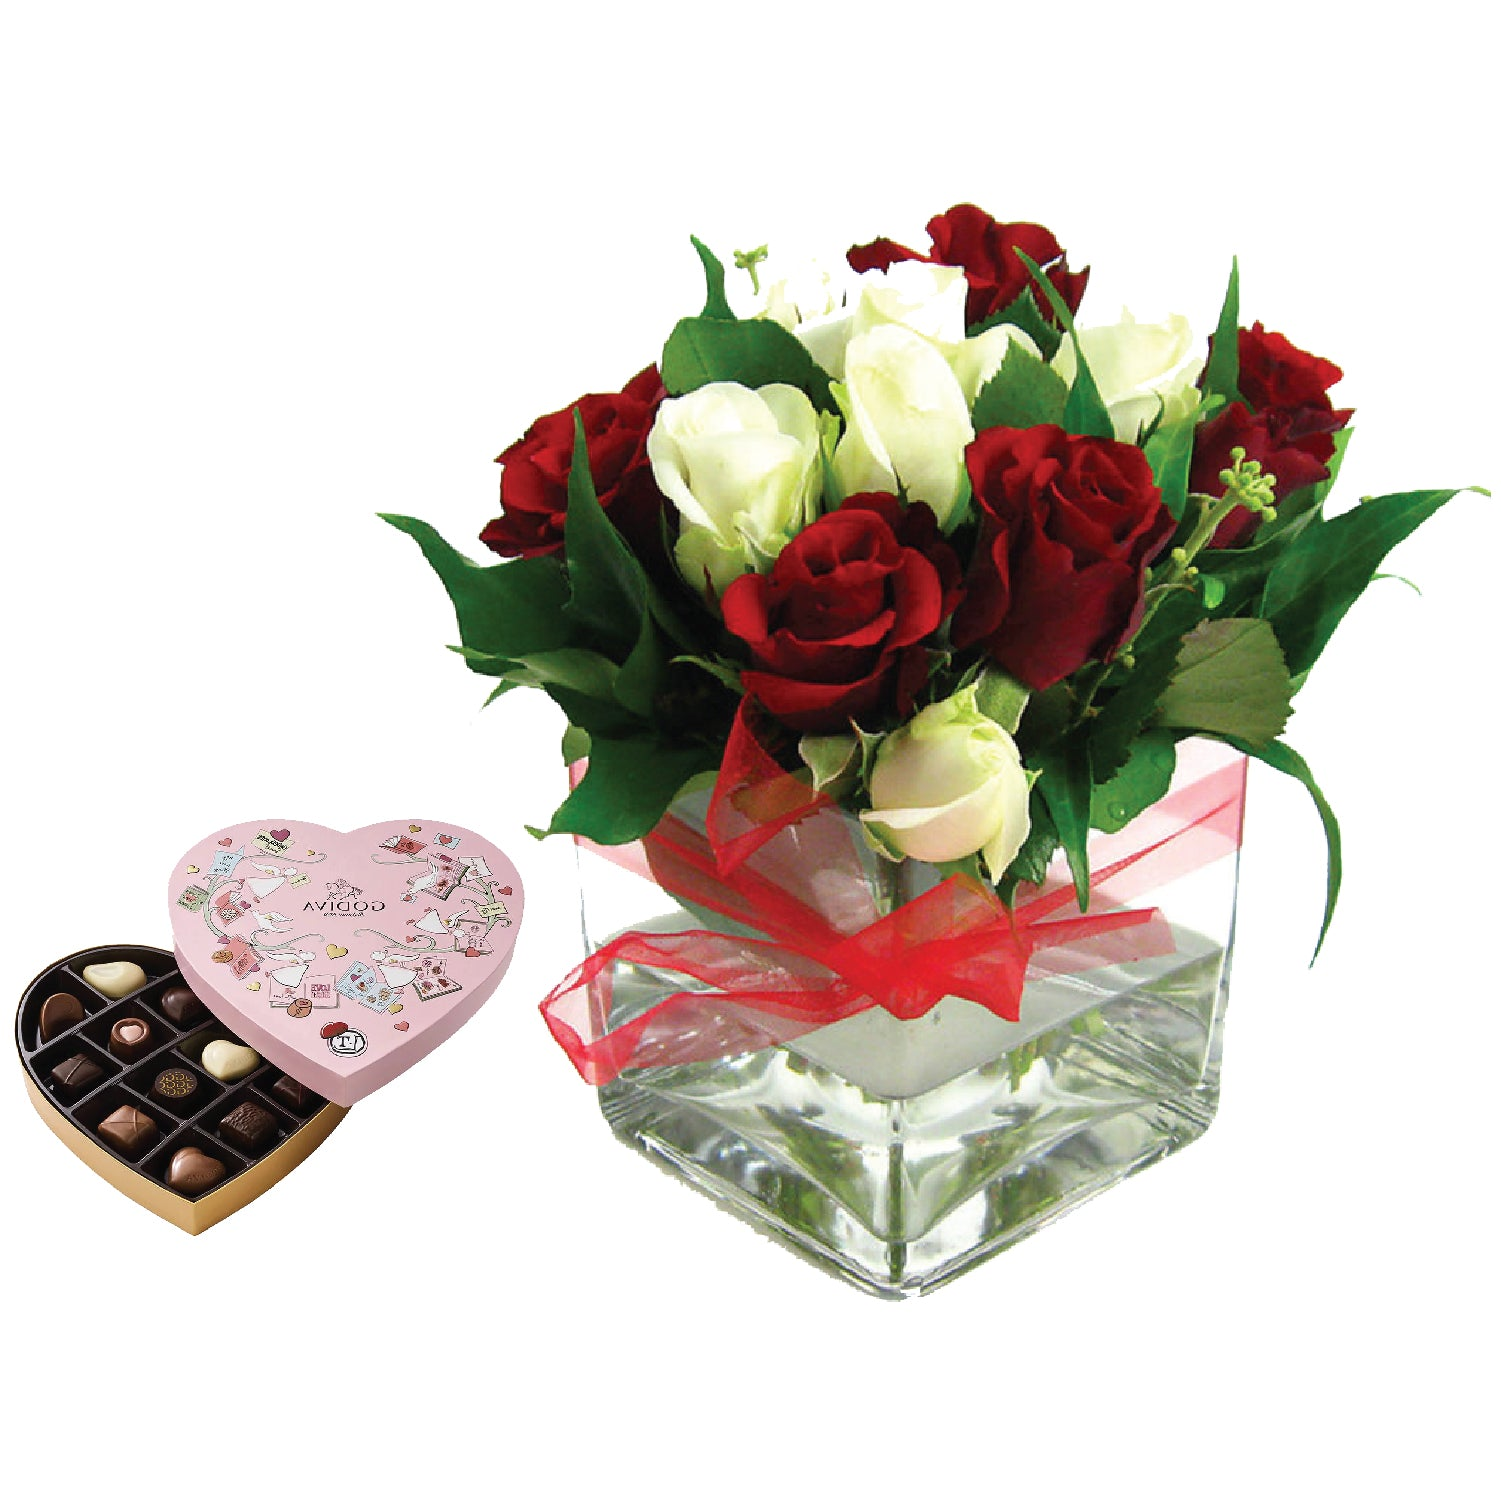 Red & White Rose Vase - Godiva Heart Chocolate Gift Box